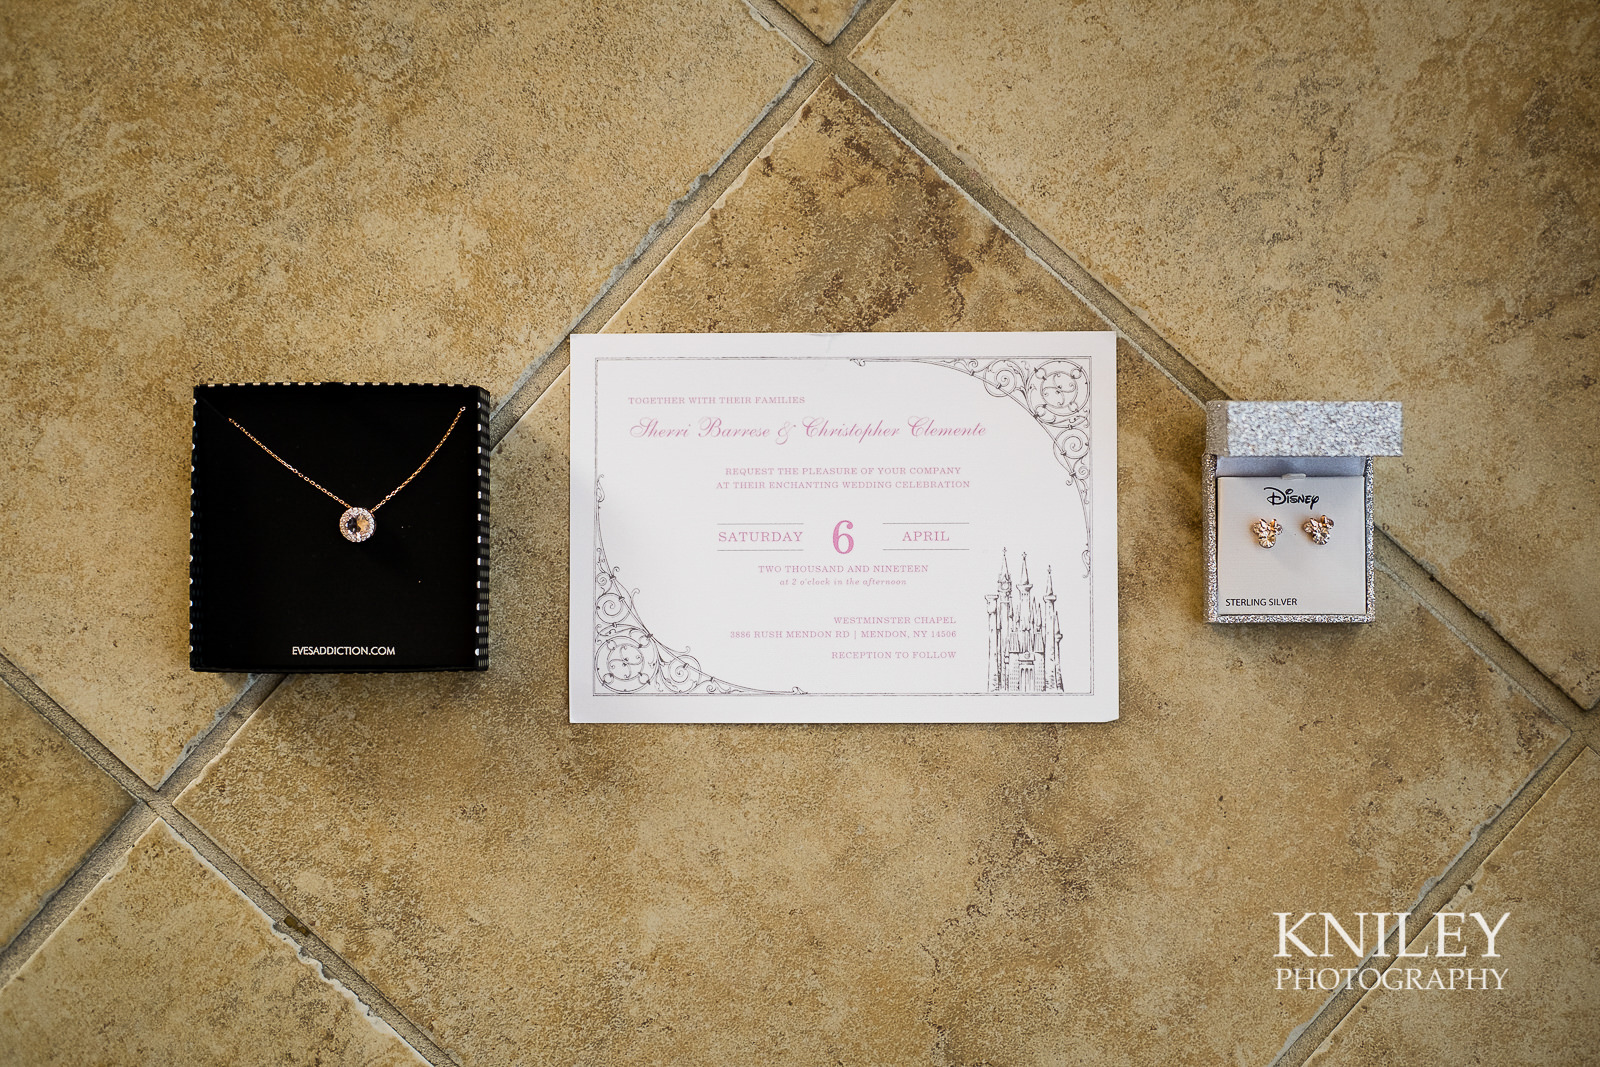 011 - Woodcliff Hotel - Rochester NY wedding photo - Kniley Photography.jpg